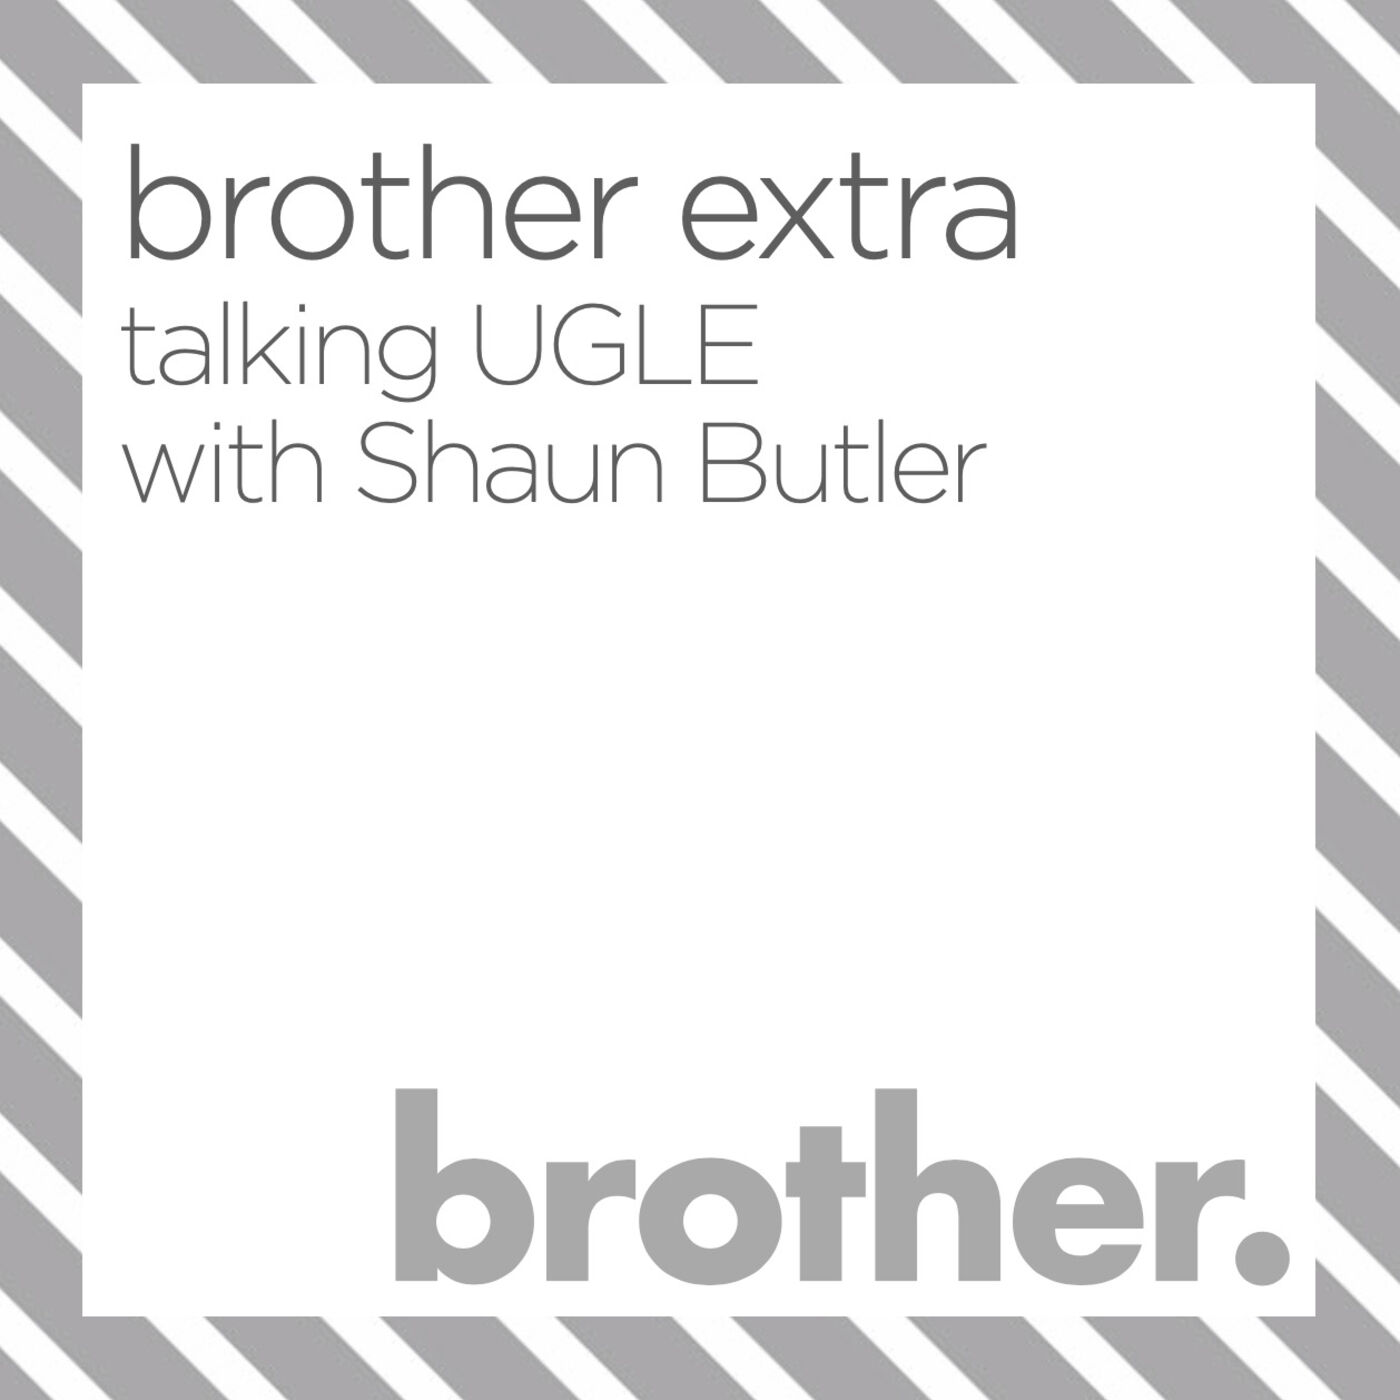 Brother Extra: Talking UGLE with Shaun Butler